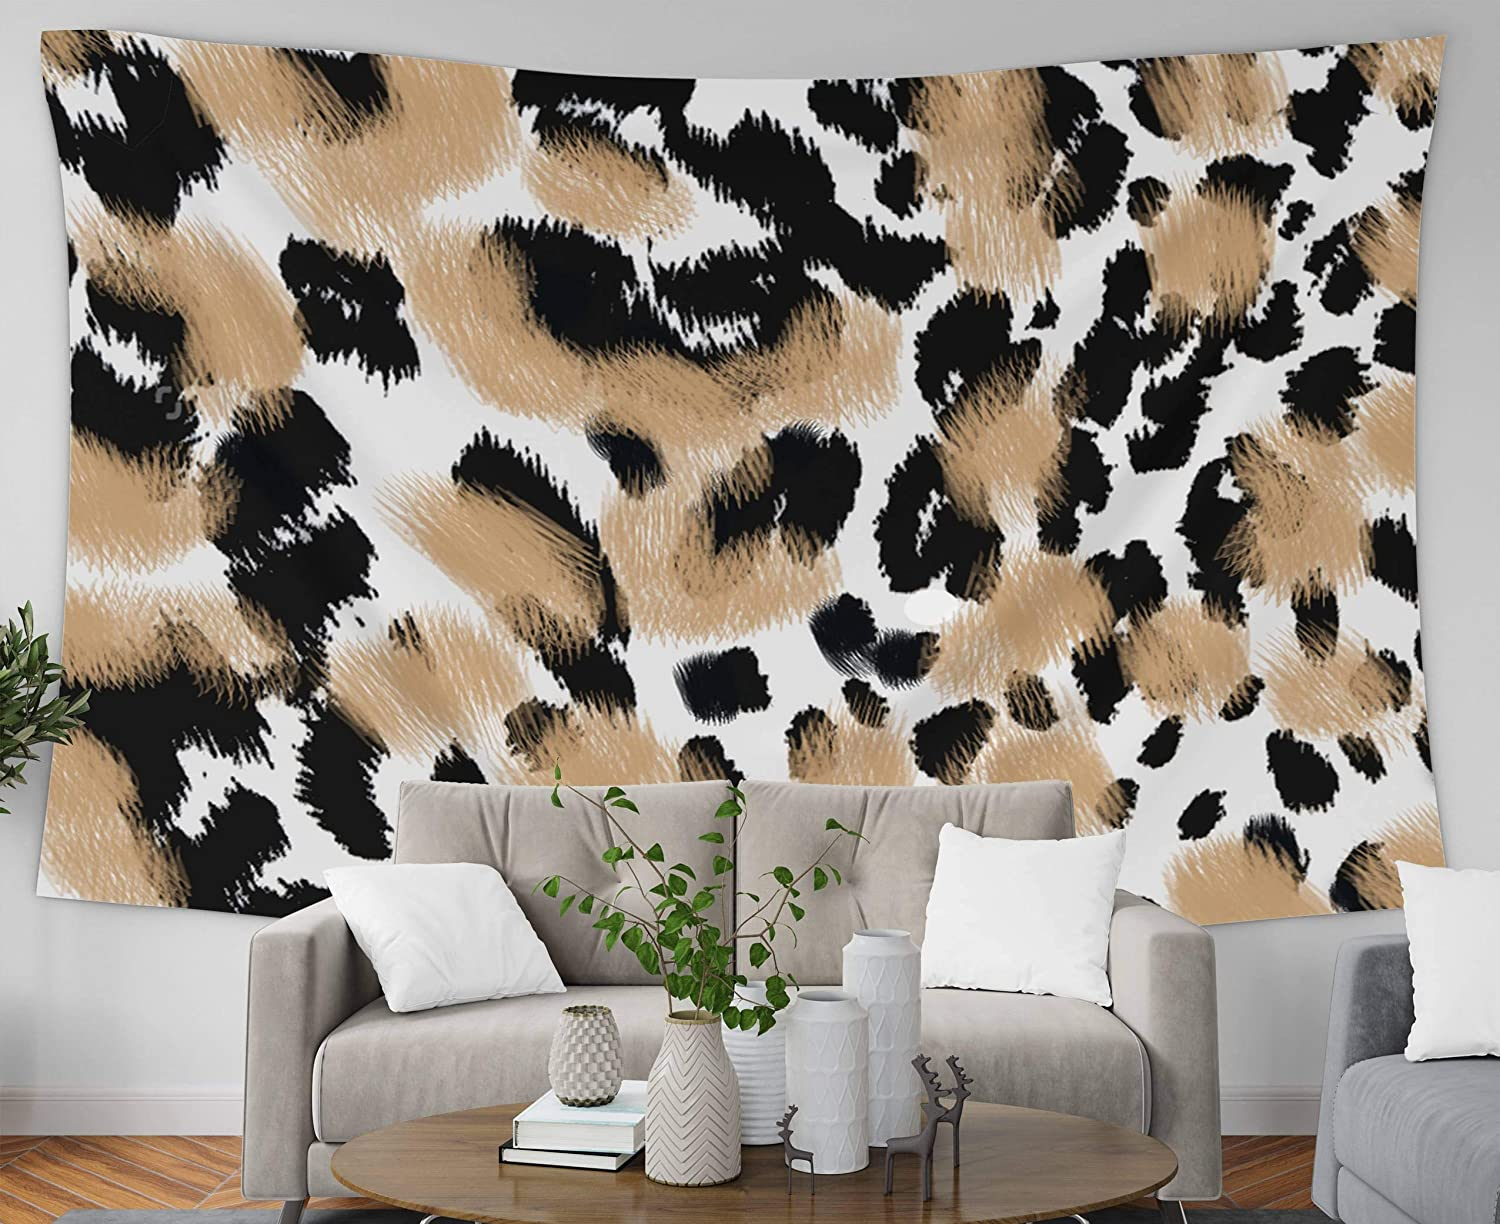 Amazon Com Pamime Wall Hanging Wall Tapestry Home Decor Tapestry Animal Print Leopard Ure Background Dorm Room Bedroom Living Room 80x60 Inches 200x150cm Bedspread Inhouse Home Kitchen